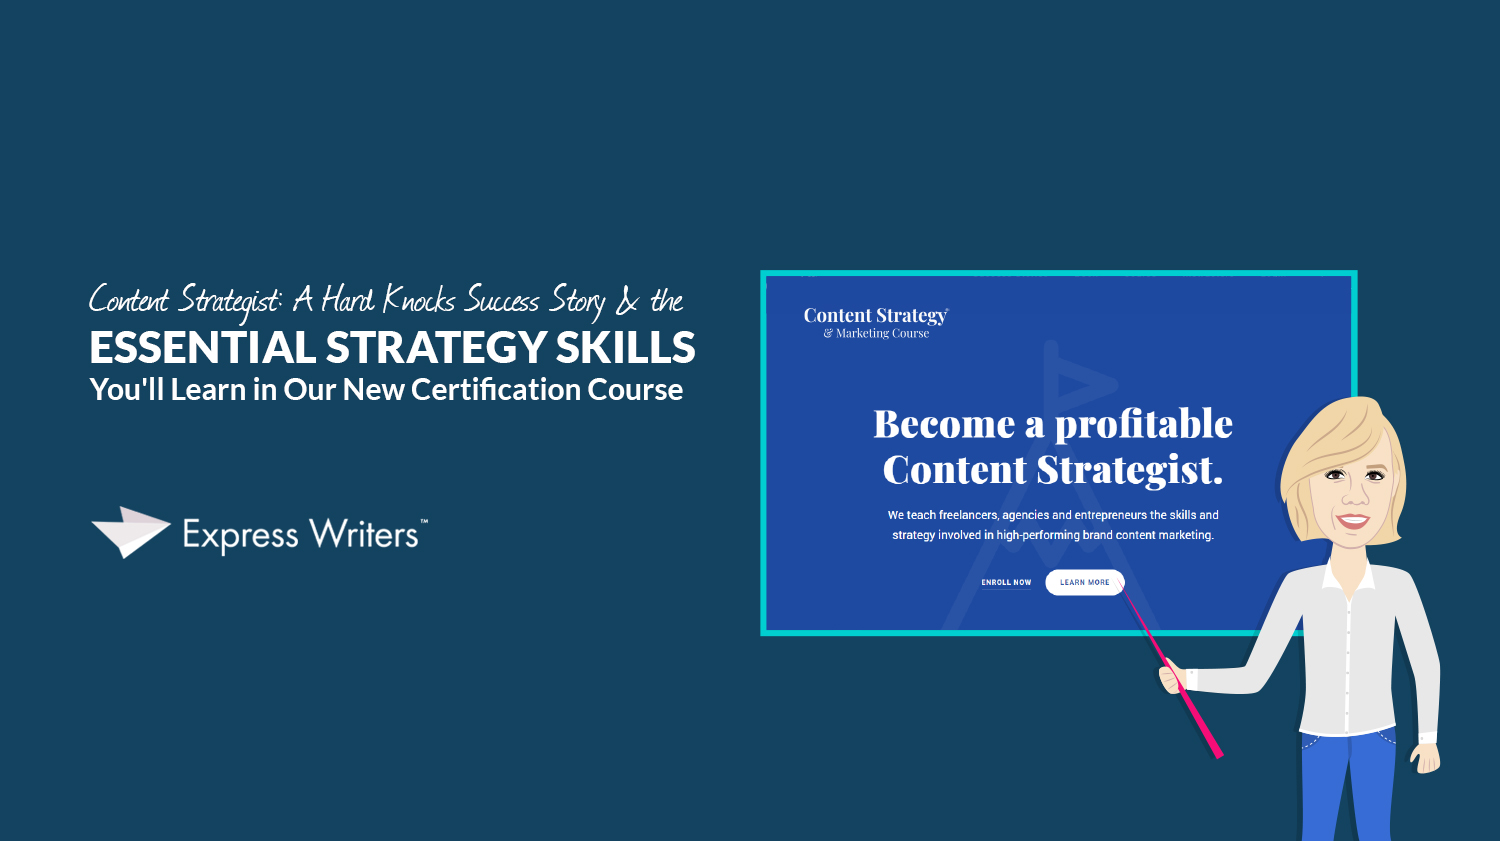 content strategist course skills